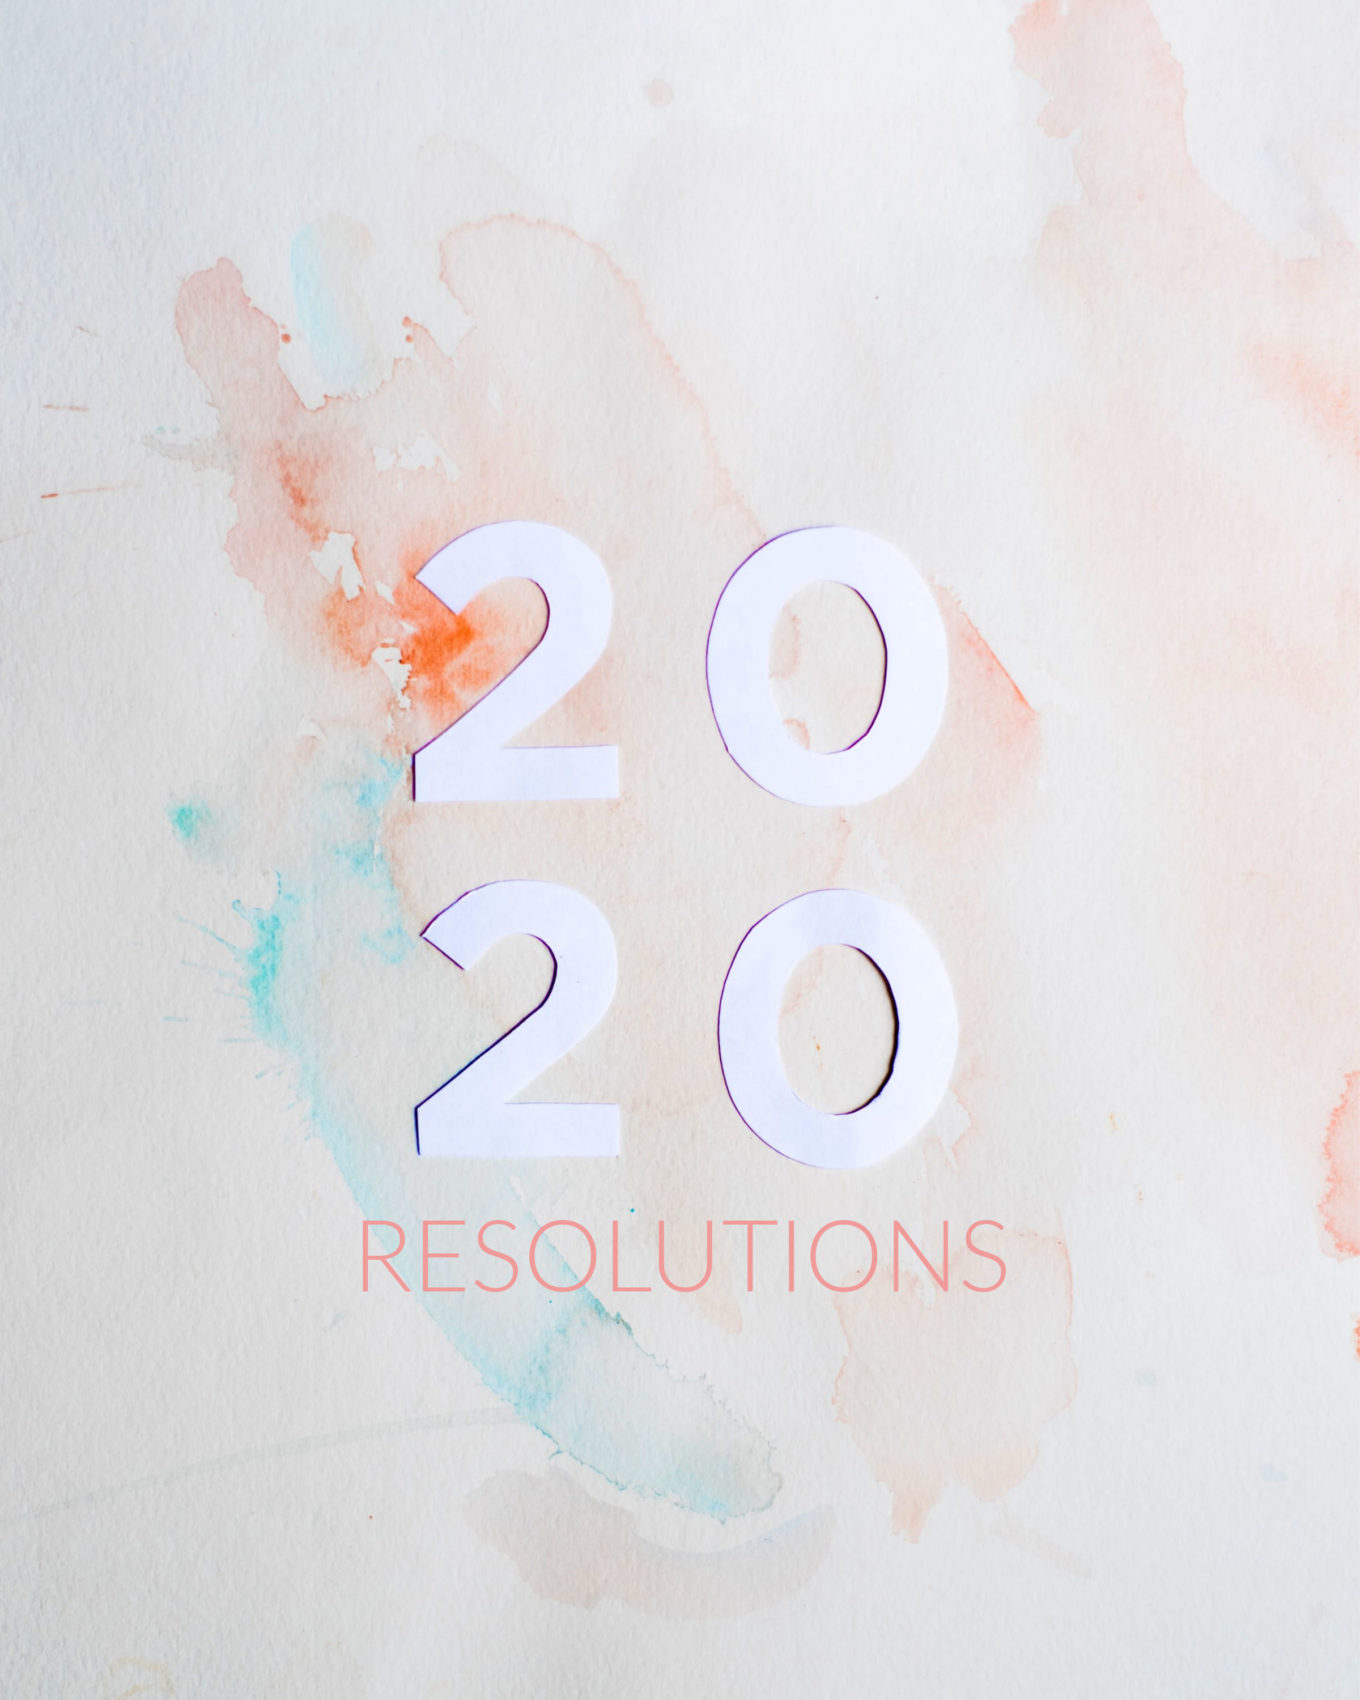 healthy resolutions for 2020